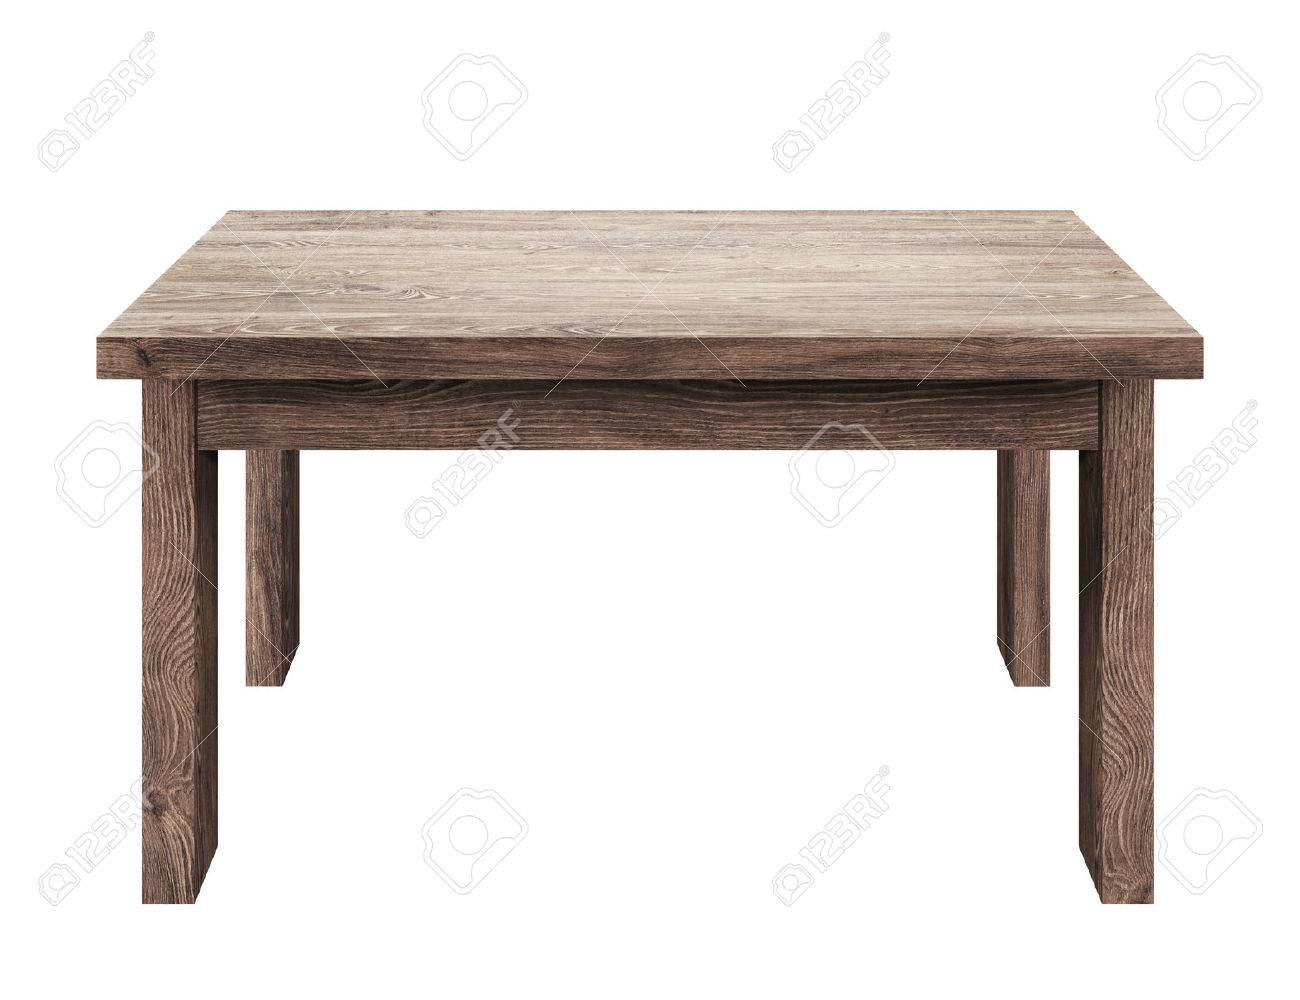 Wooden table isolated on white background Stock Photo - 31206898